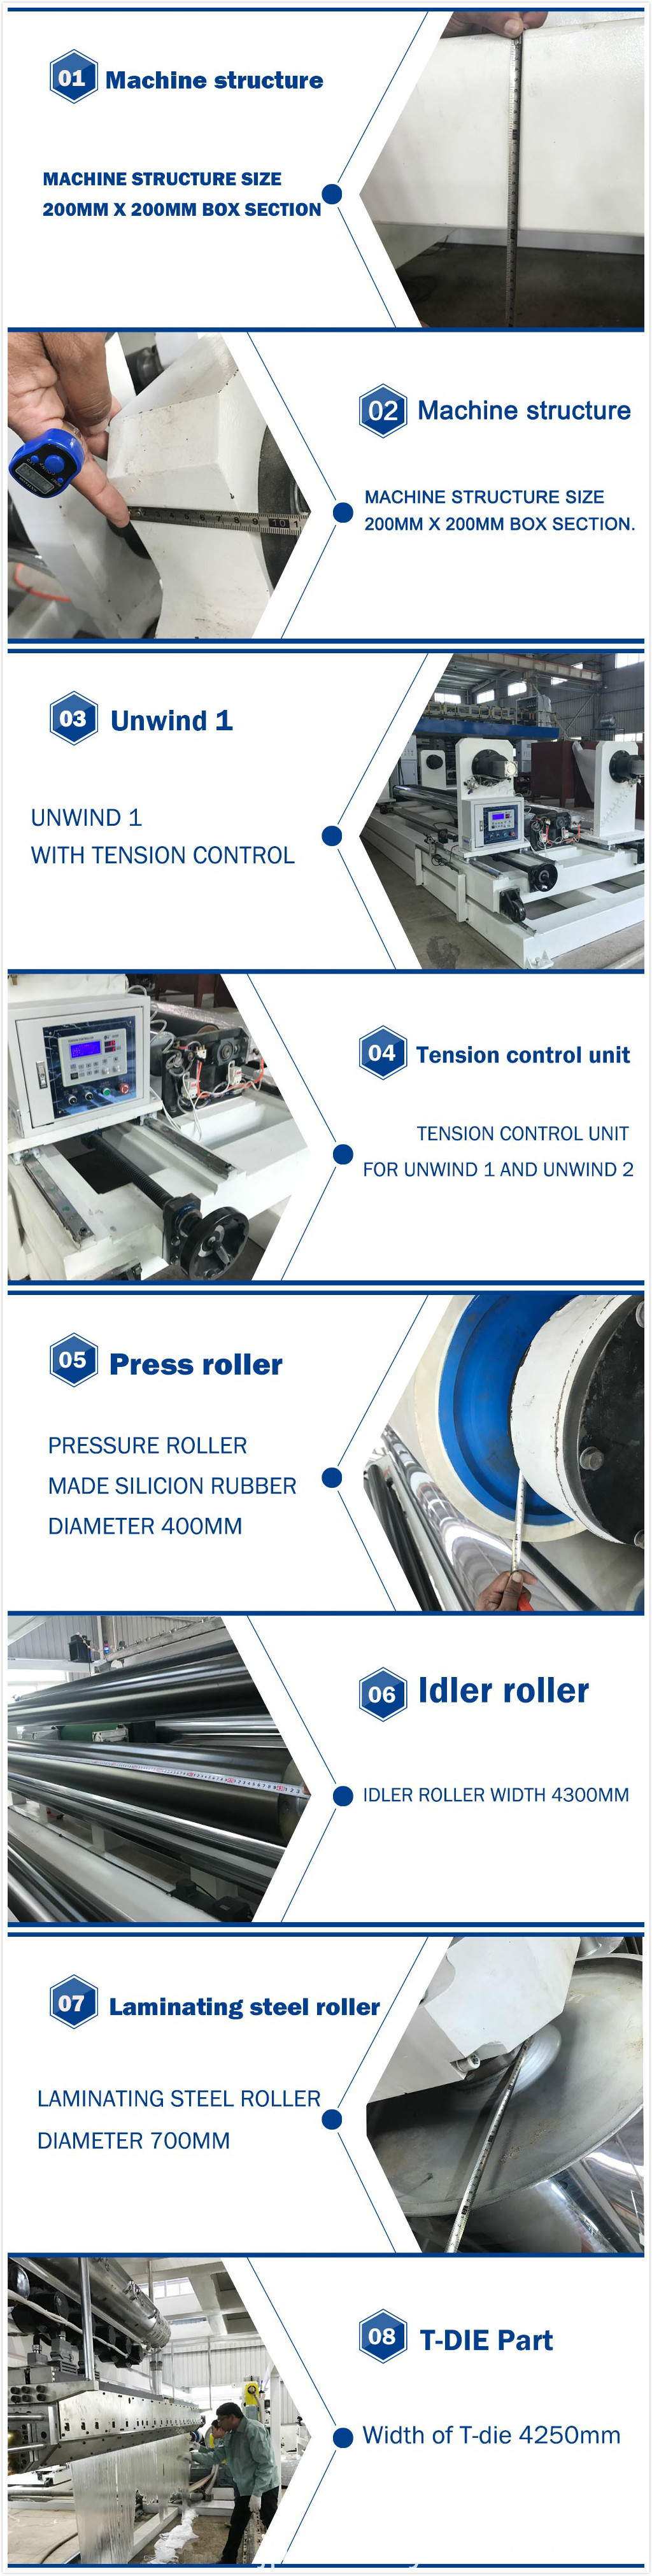 Extrusion Laminating Machine 01